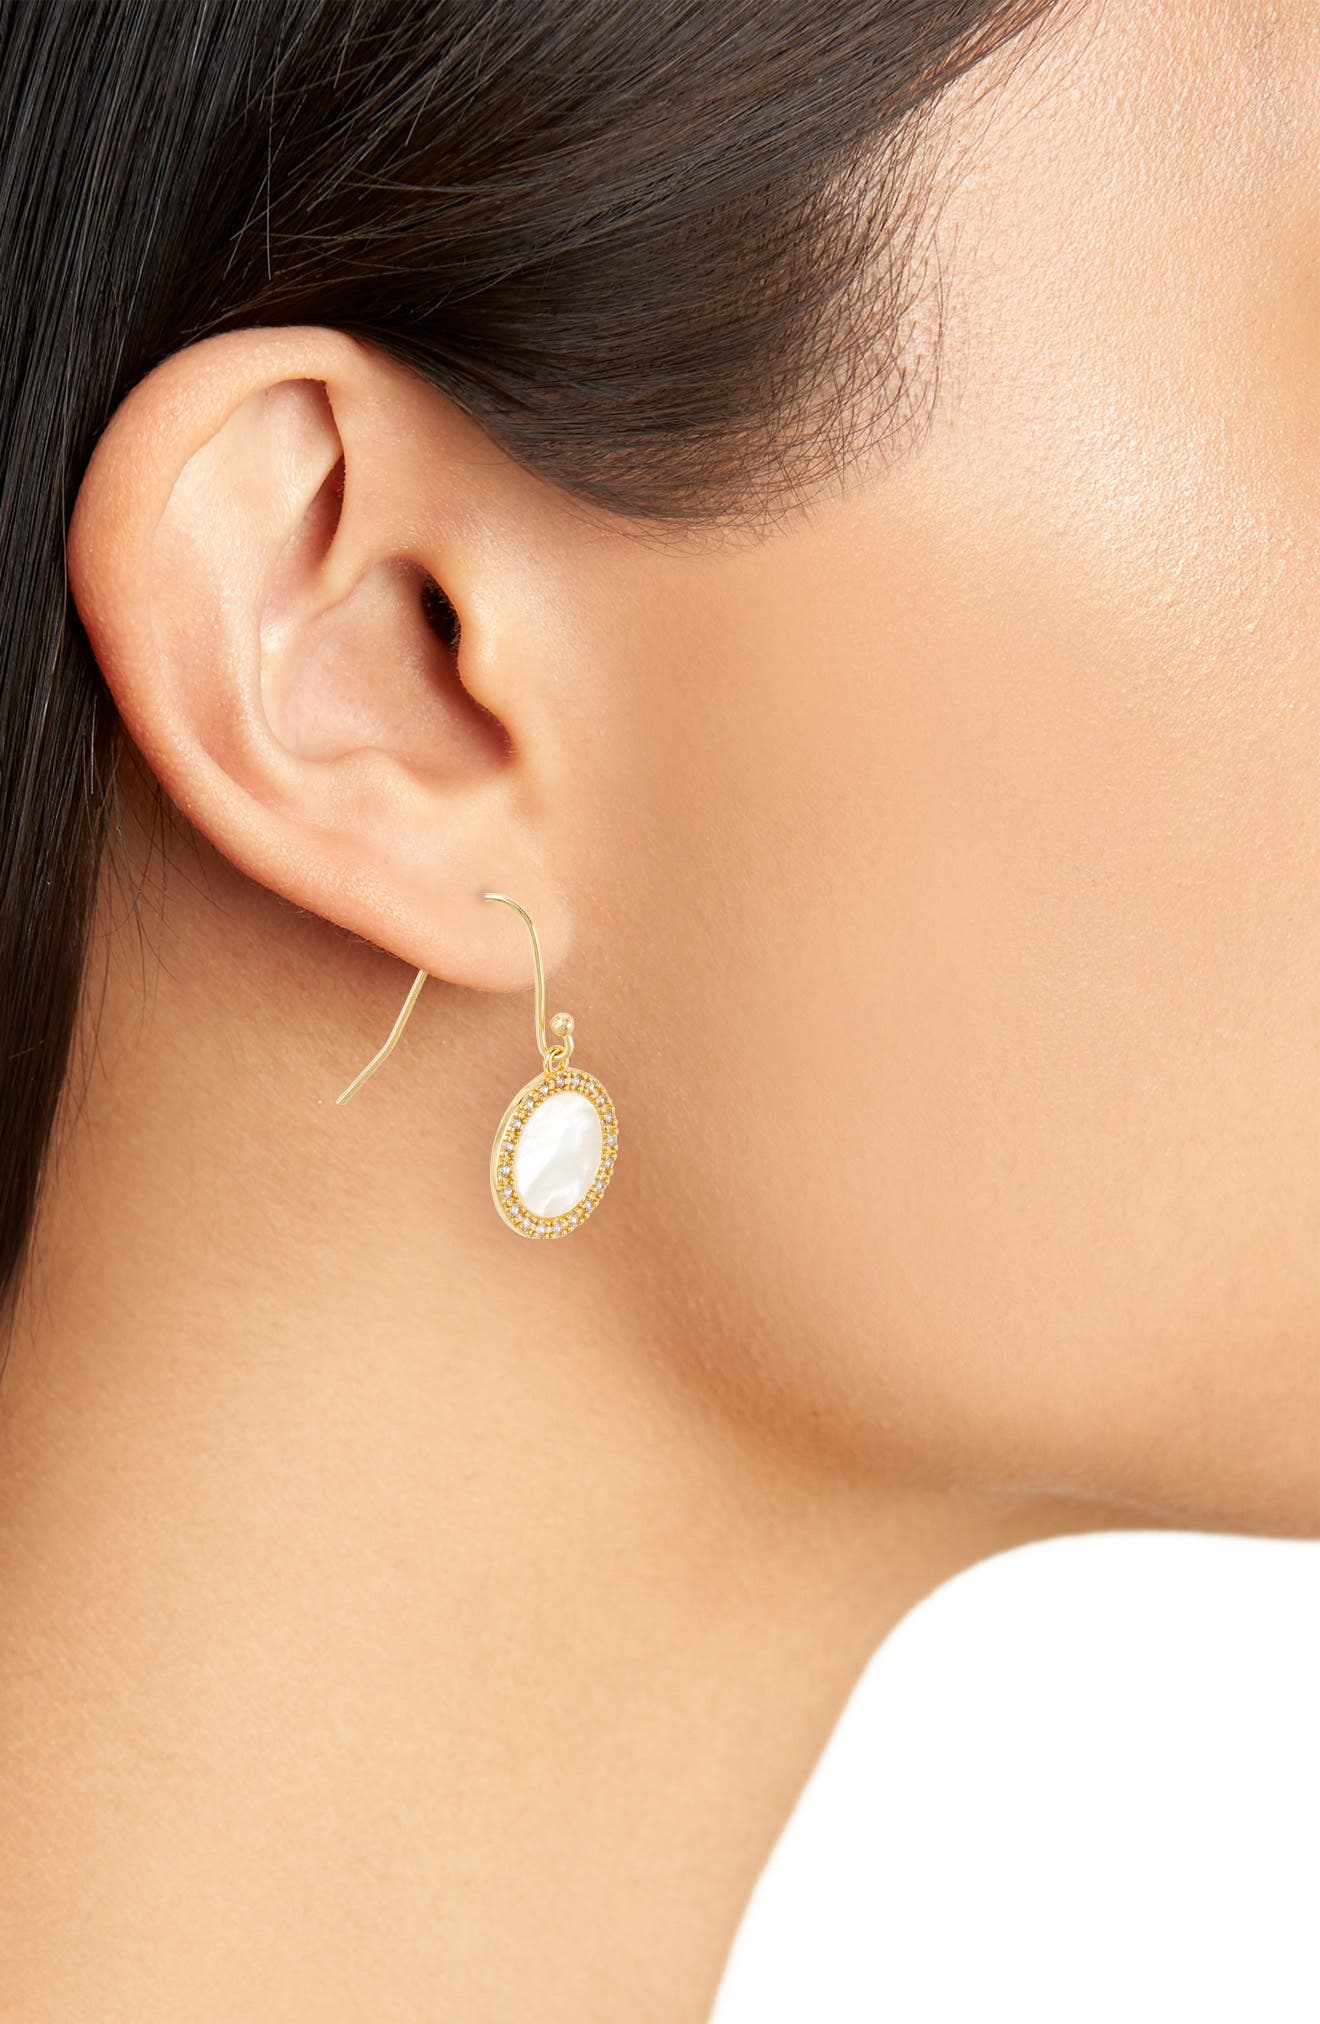 Mother of Pearl Drop Earrings,                             Alternate thumbnail 2, color,                             MOTHER OF PEARL/ GOLD